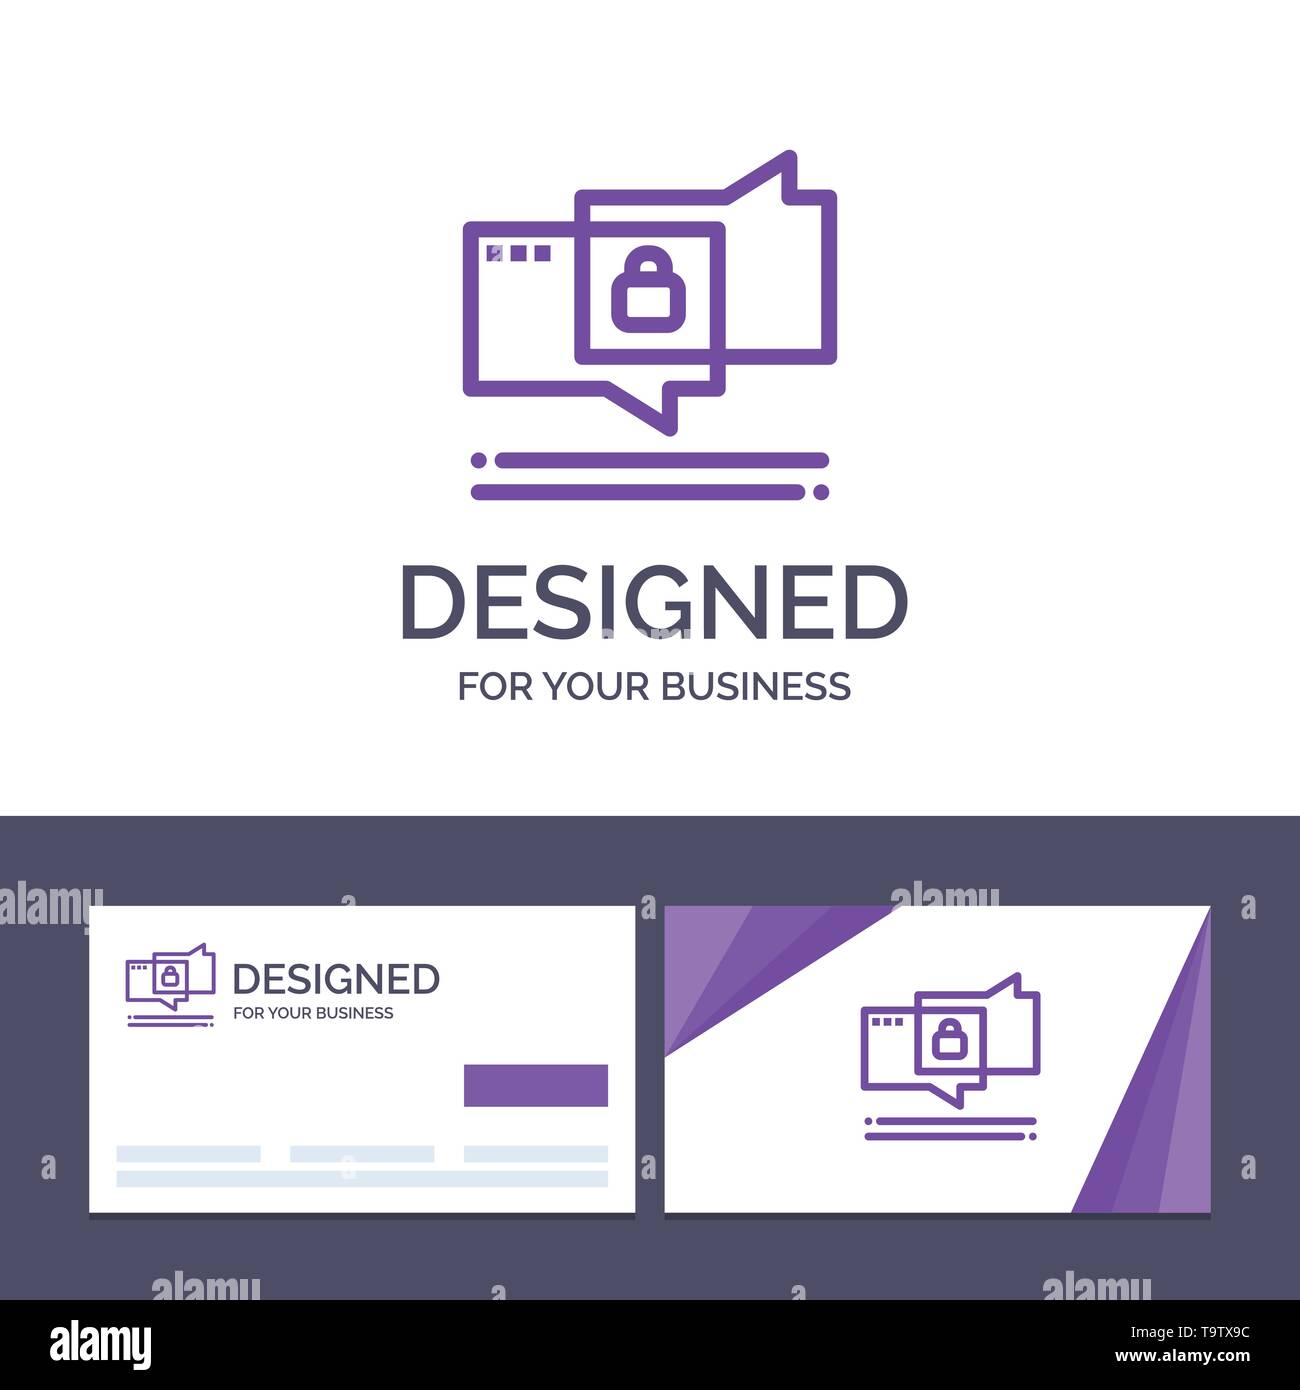 Creative Business Card and Logo template Chat, Chatting, Security, Secure Vector Illustration - Stock Image